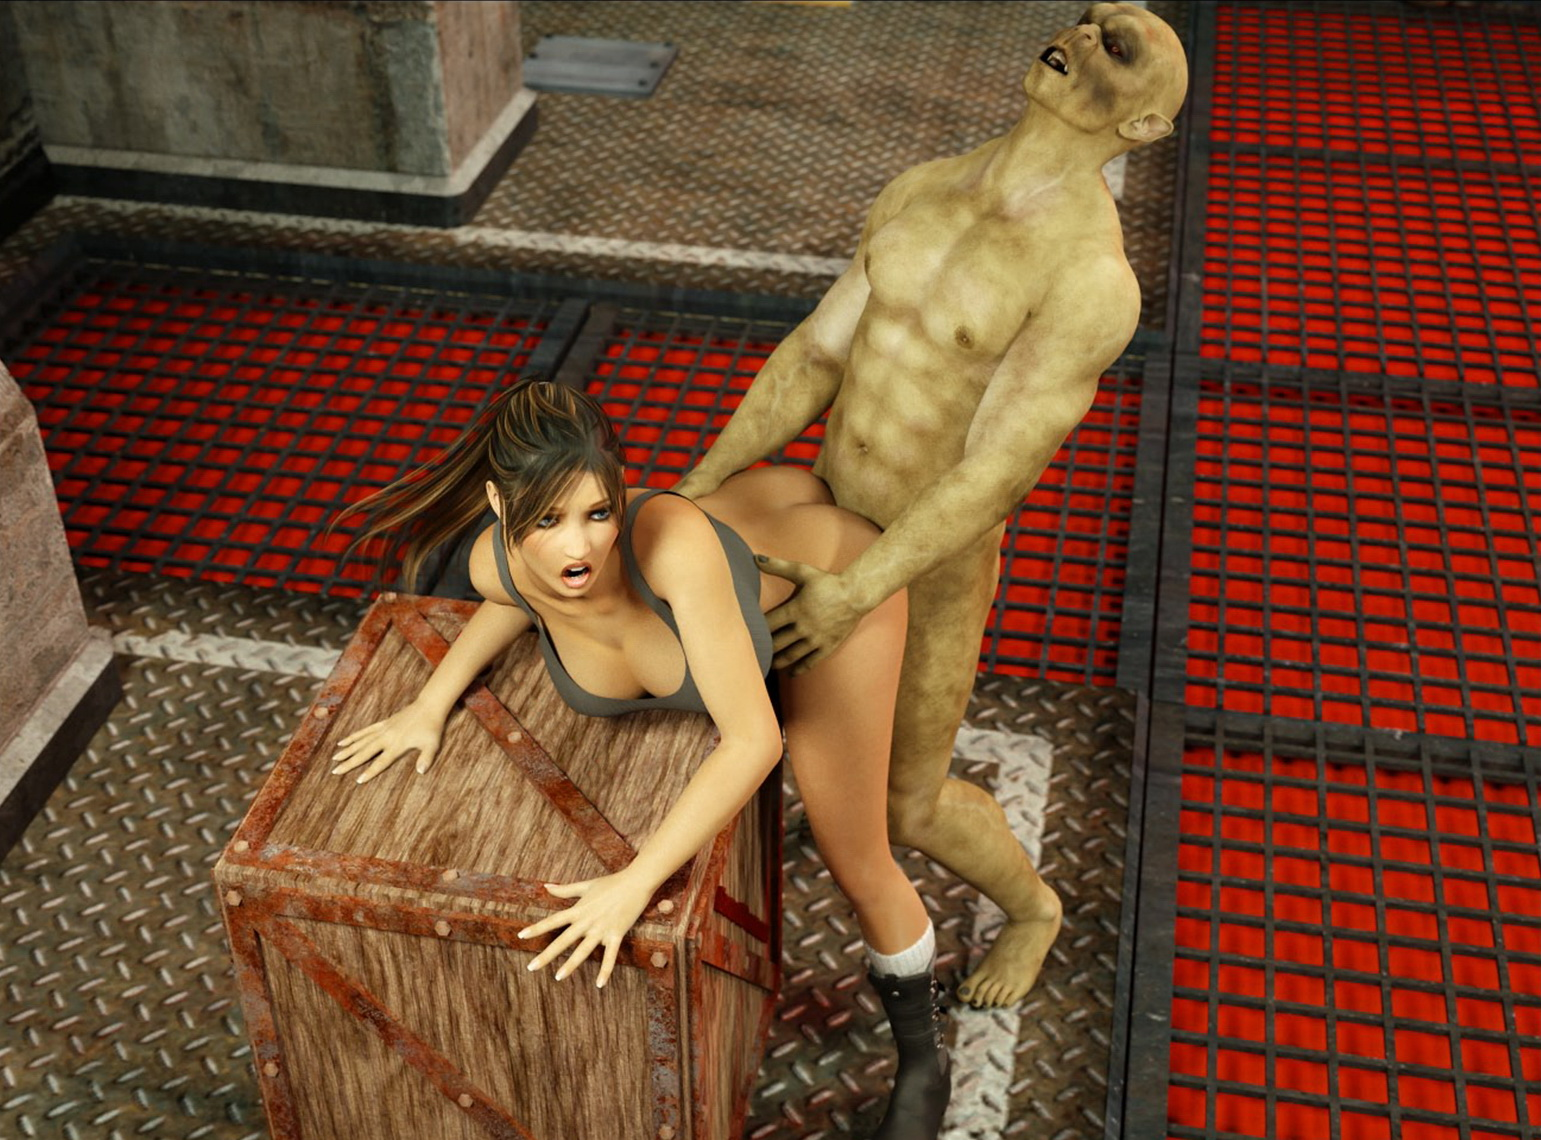 Lara croft gets fucked by moster wolf hentia clips